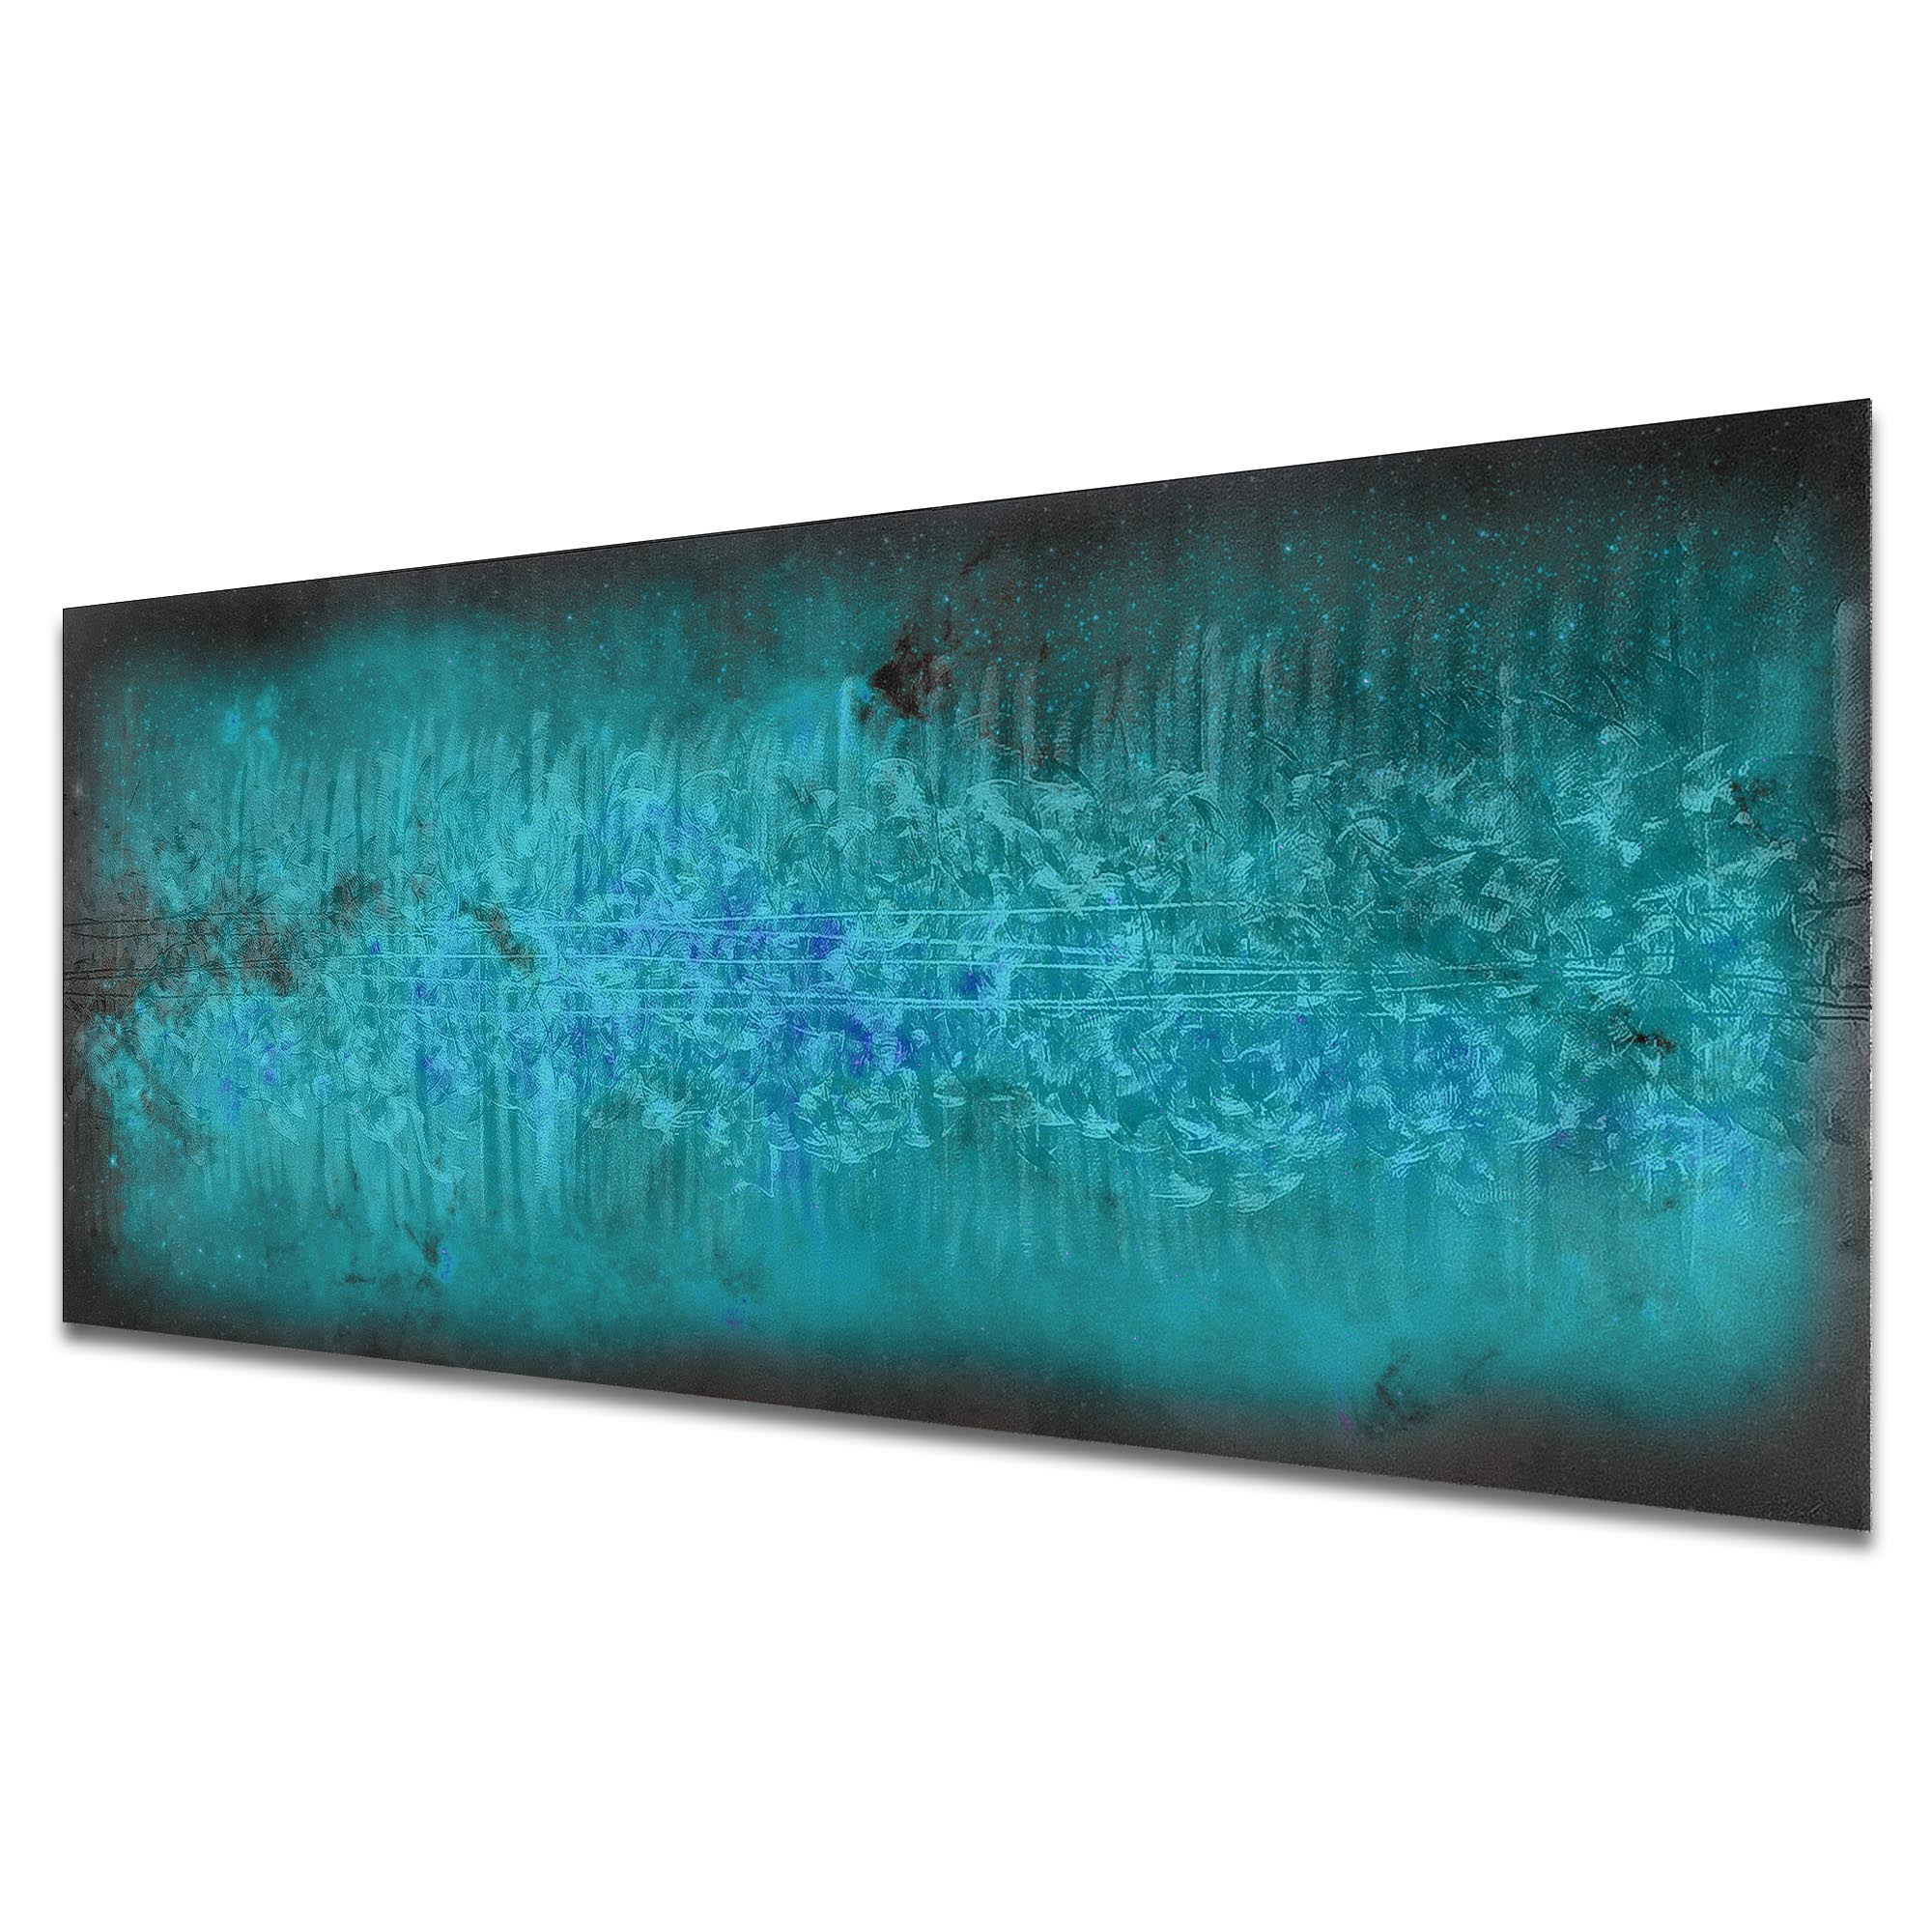 Milky Way Static by Helena Martin - Original Abstract Art on Ground and Colored Metal - Image 2